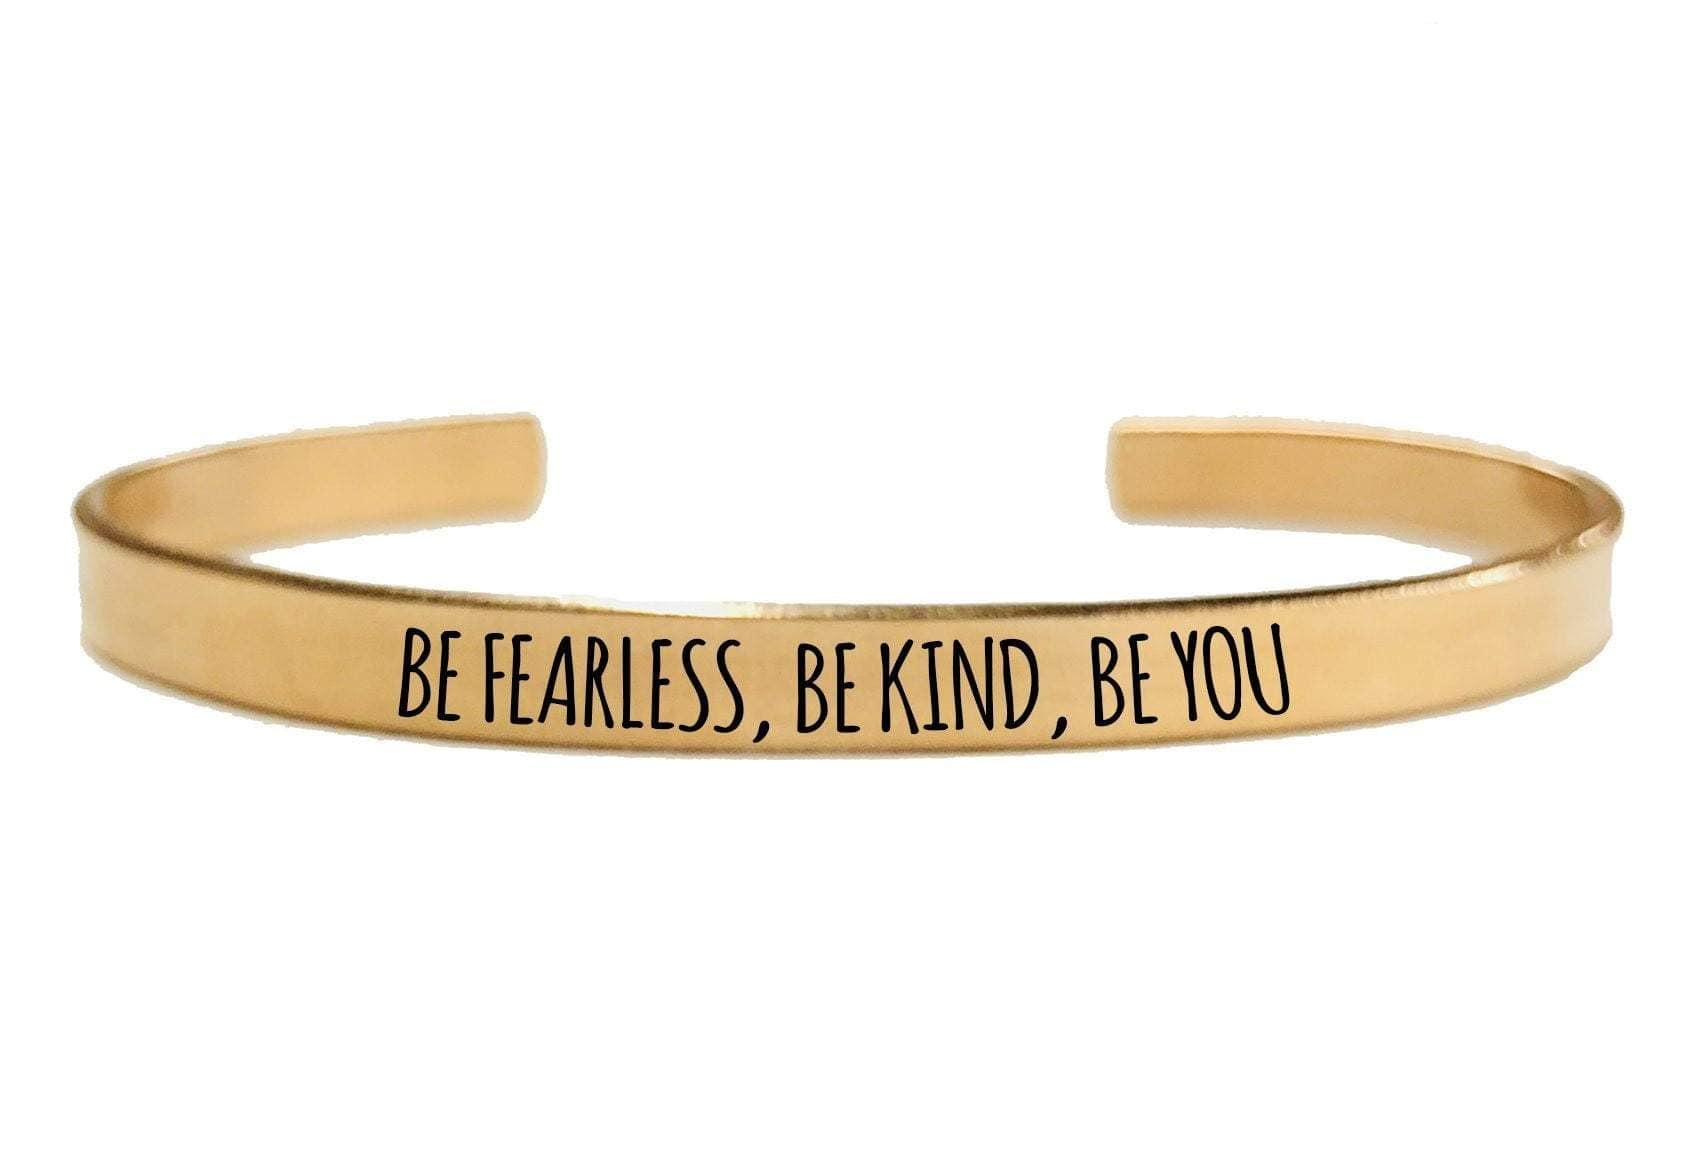 BE FEARLESS BE KIND BE YOU CUFF BRACELET